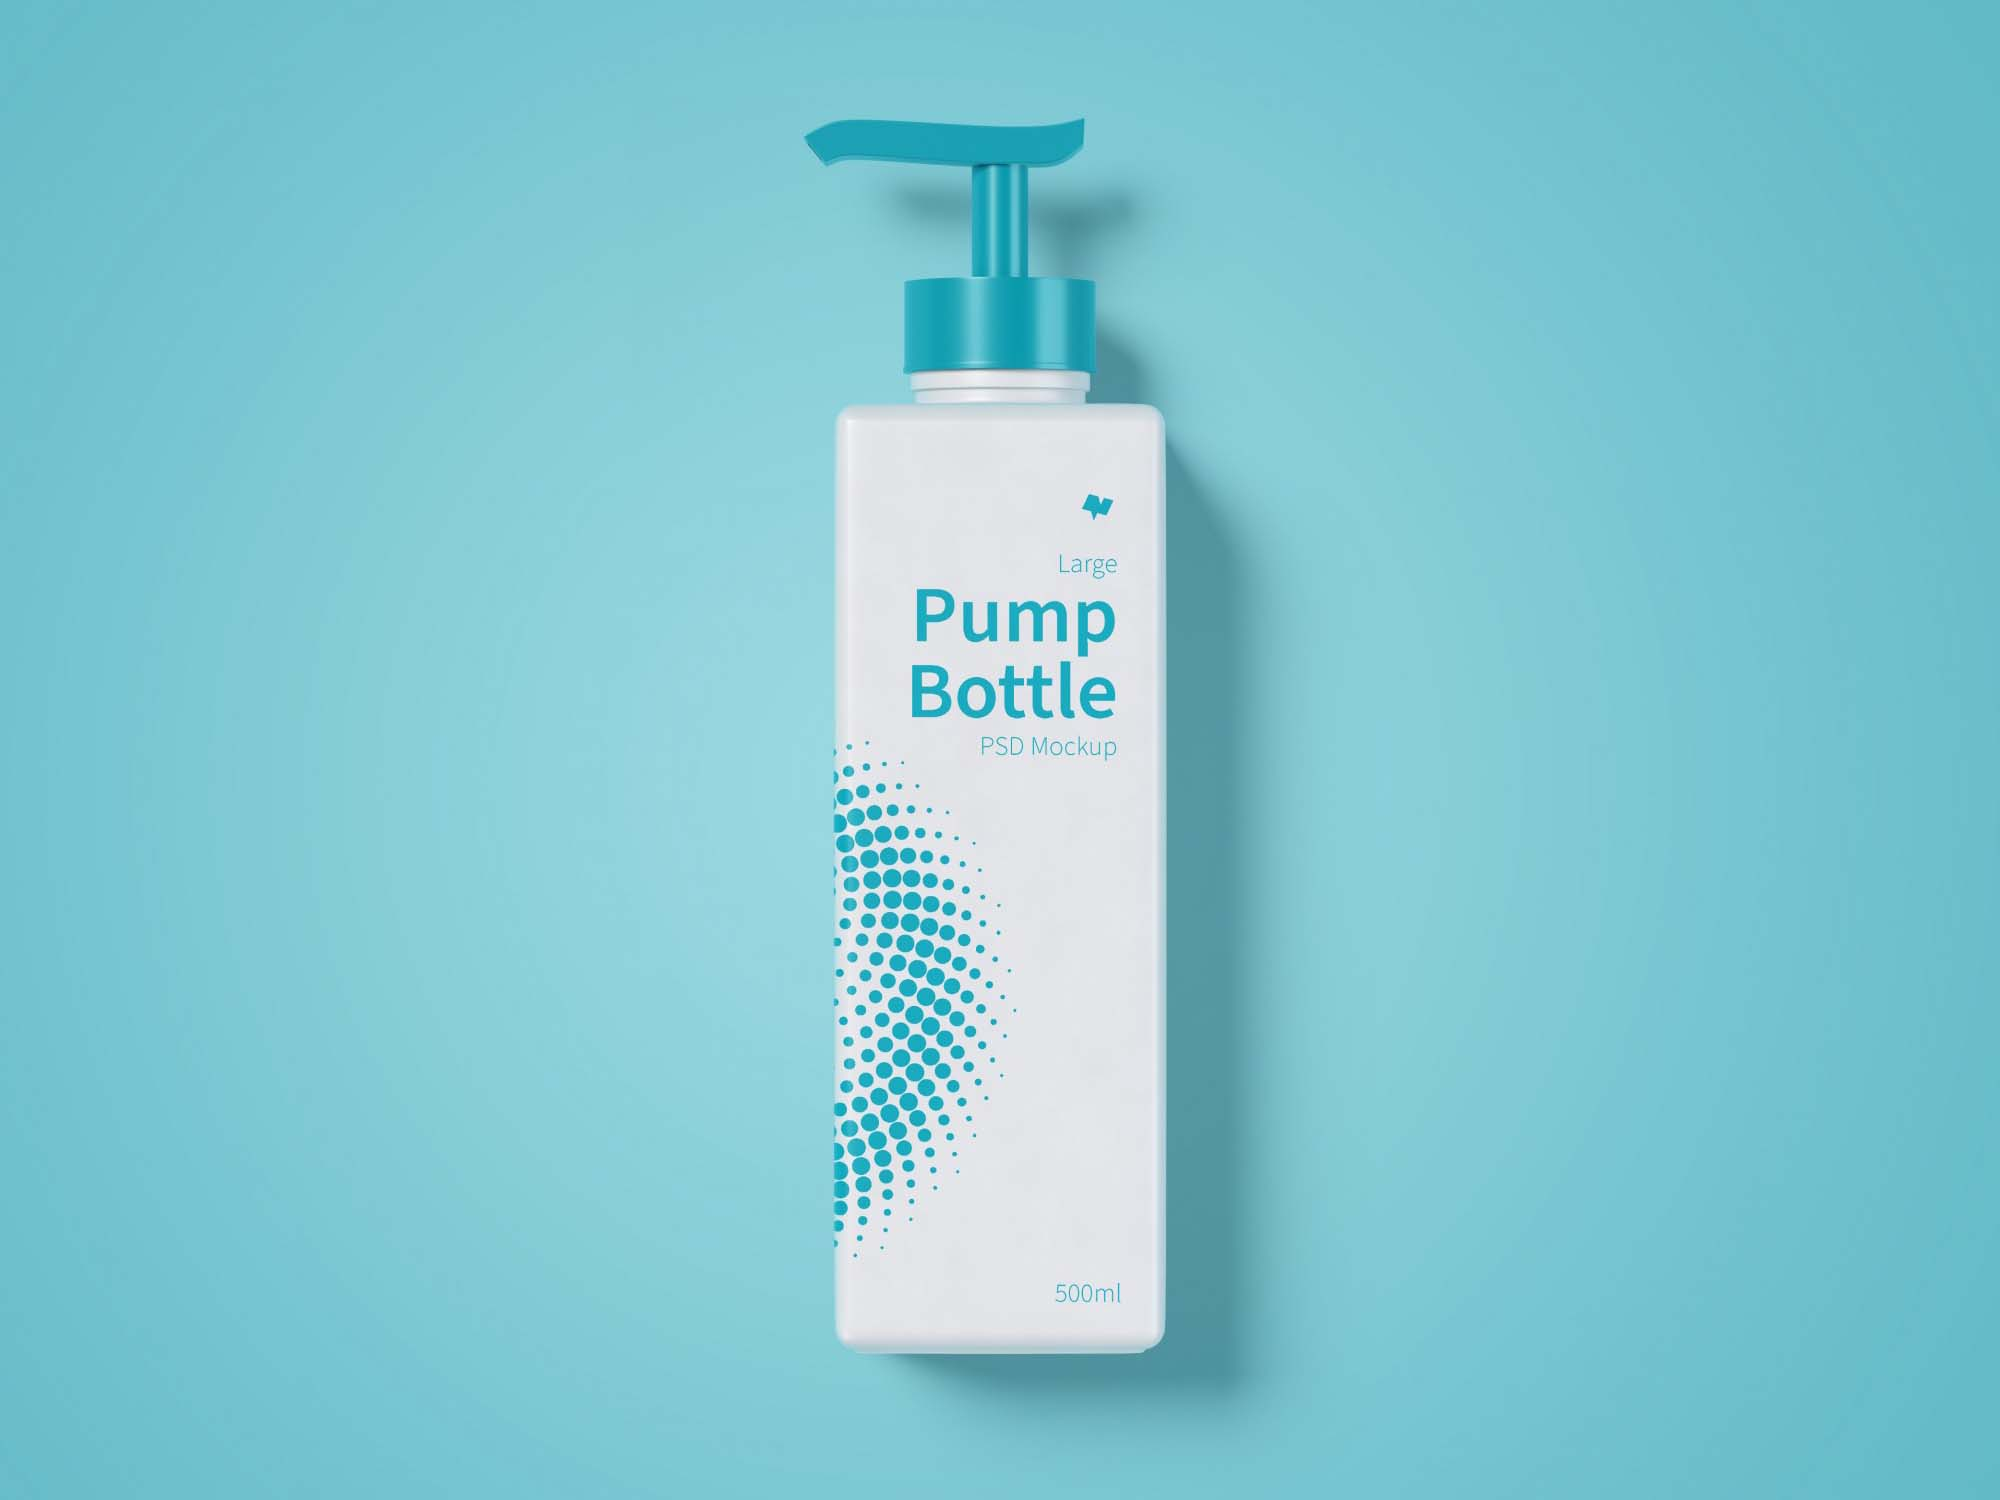 Large Pump Bottle Mockup 2